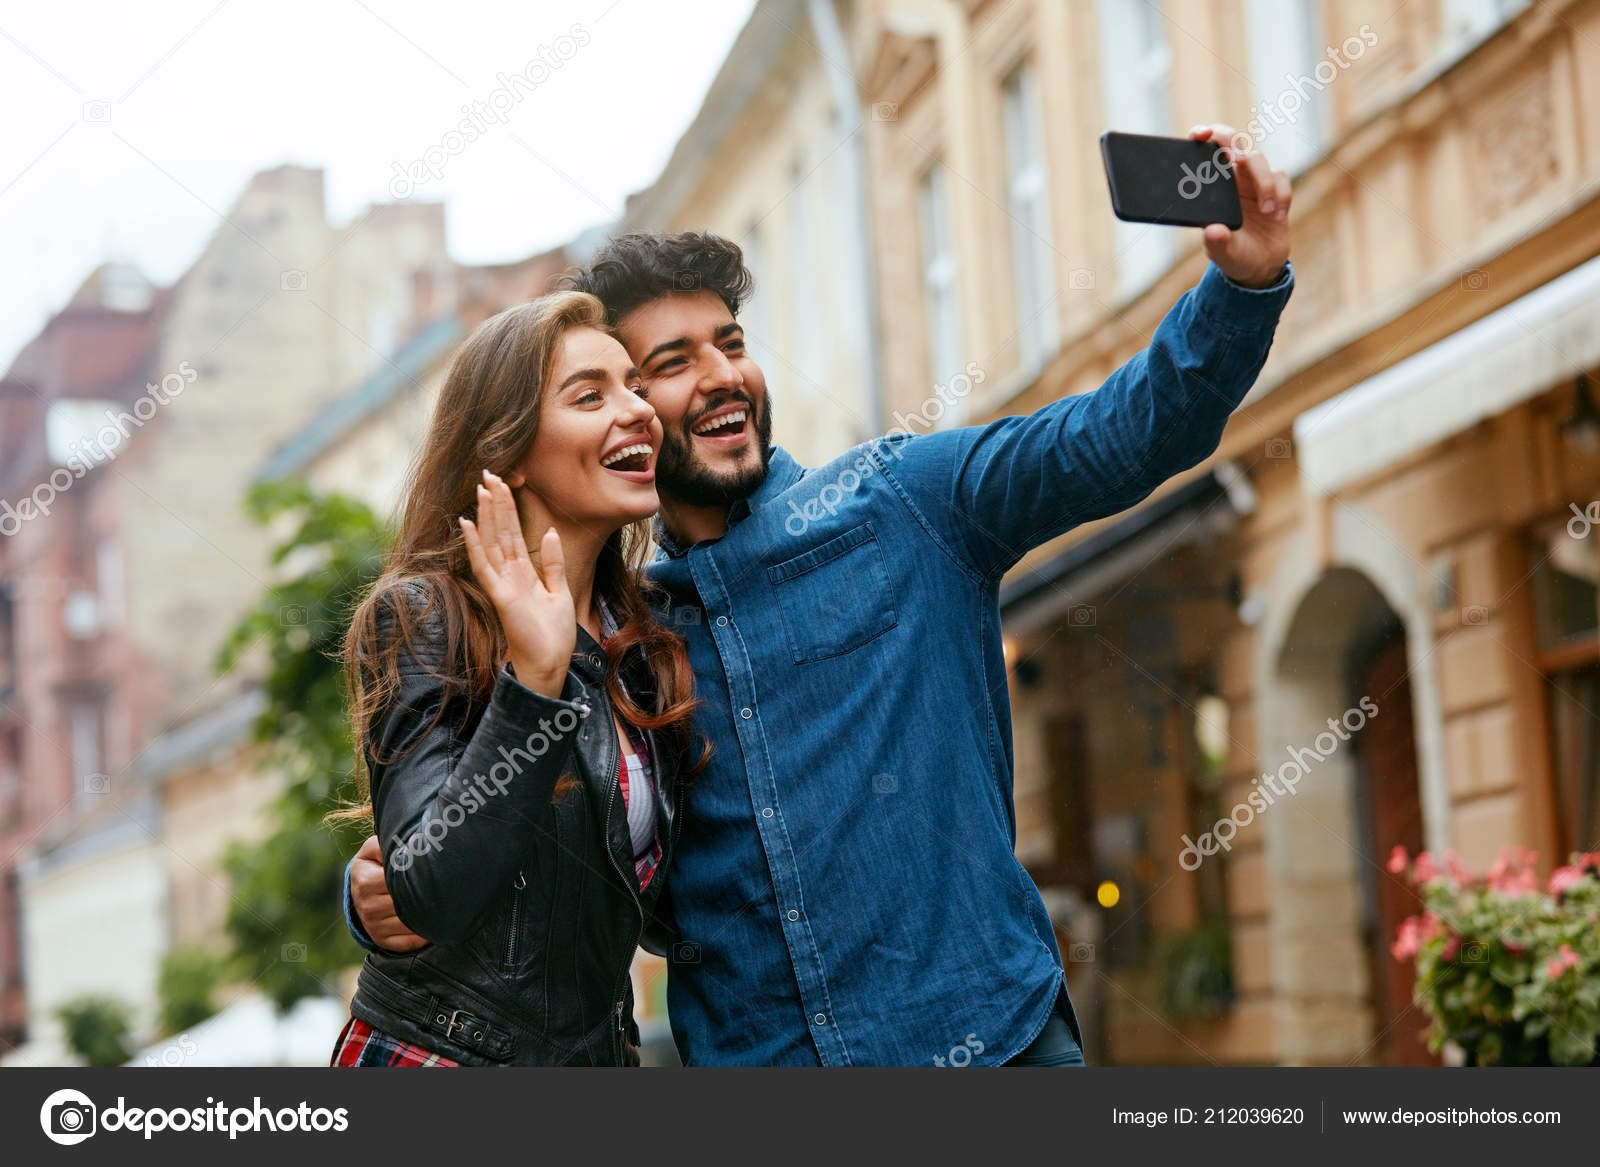 Video Call  People Using Phone For Internet Call In City  — Stock